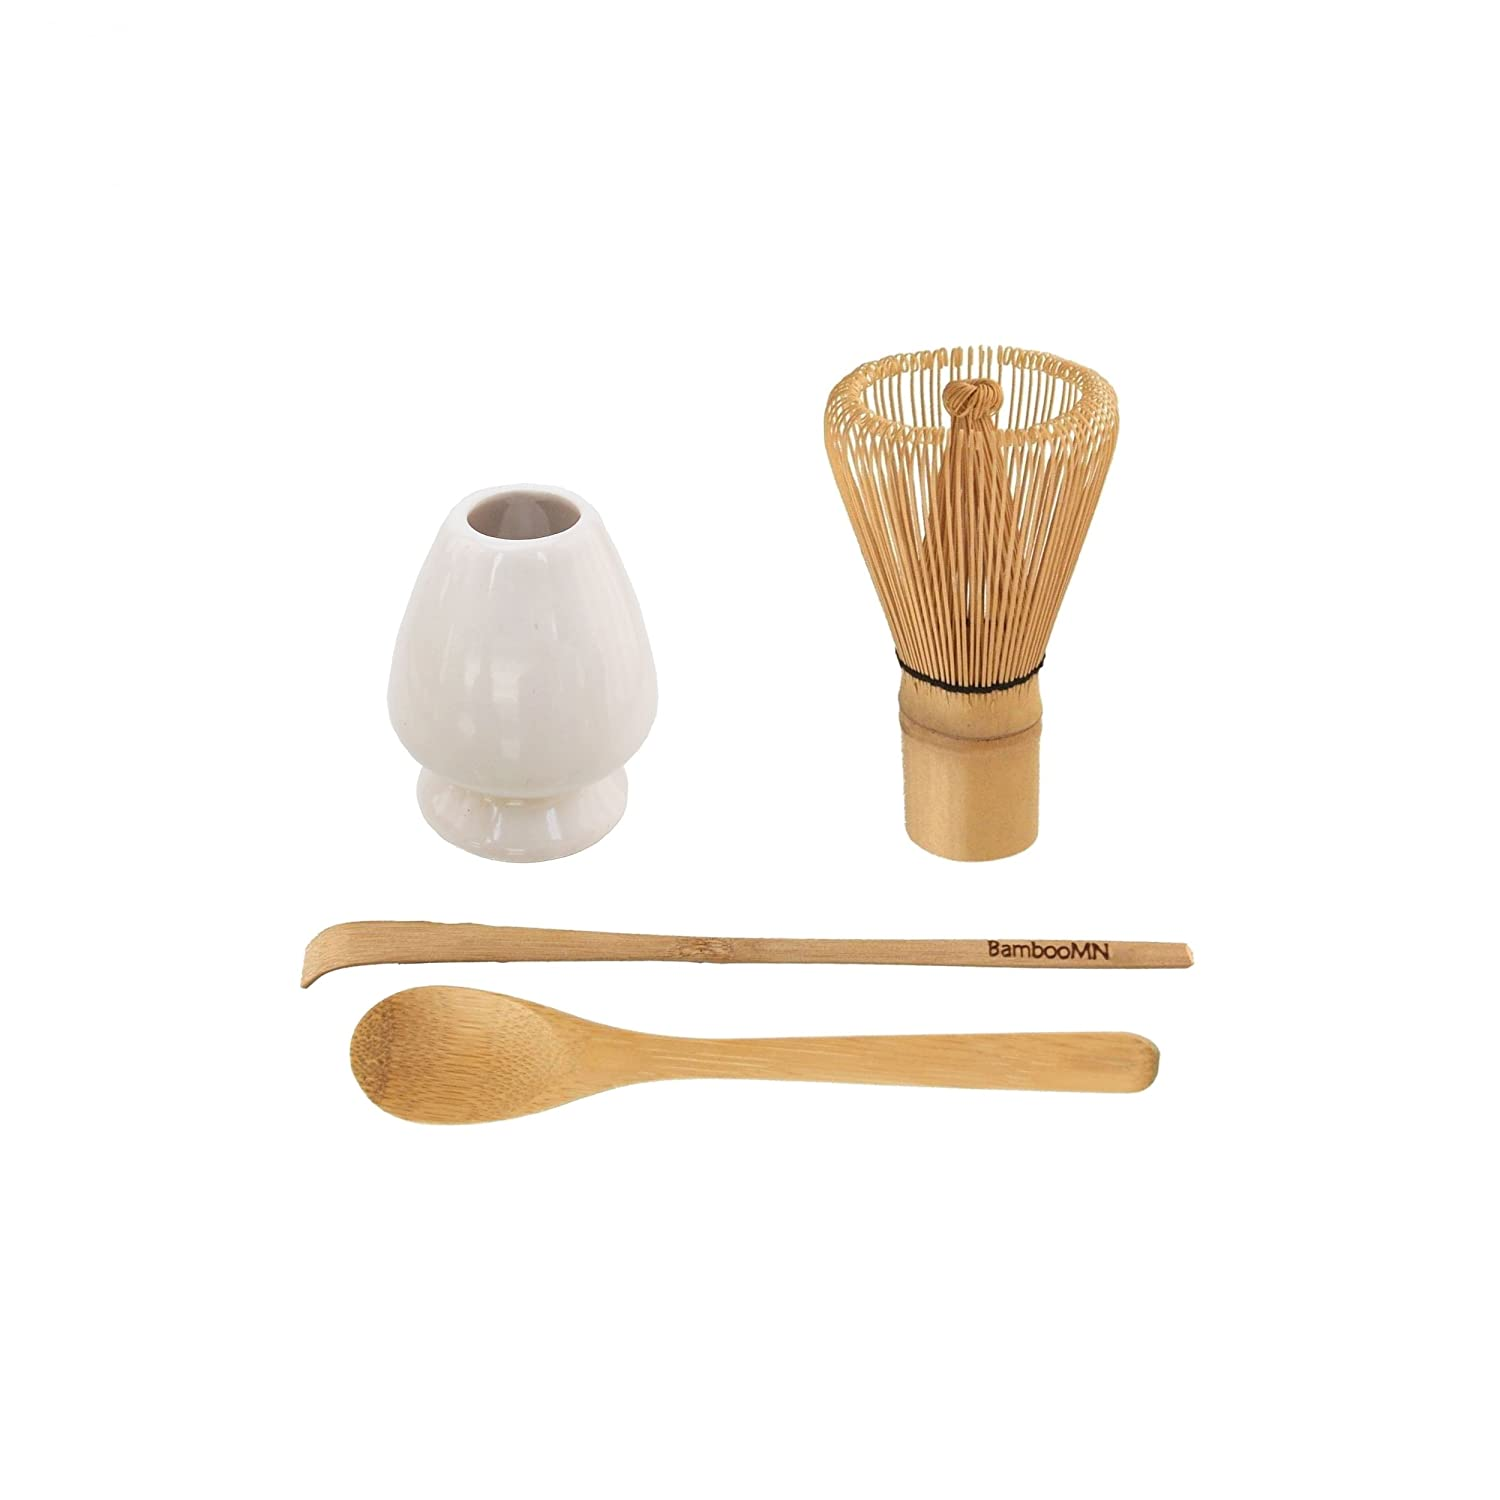 Coral BambooMN Brand Matcha Whisk Rest